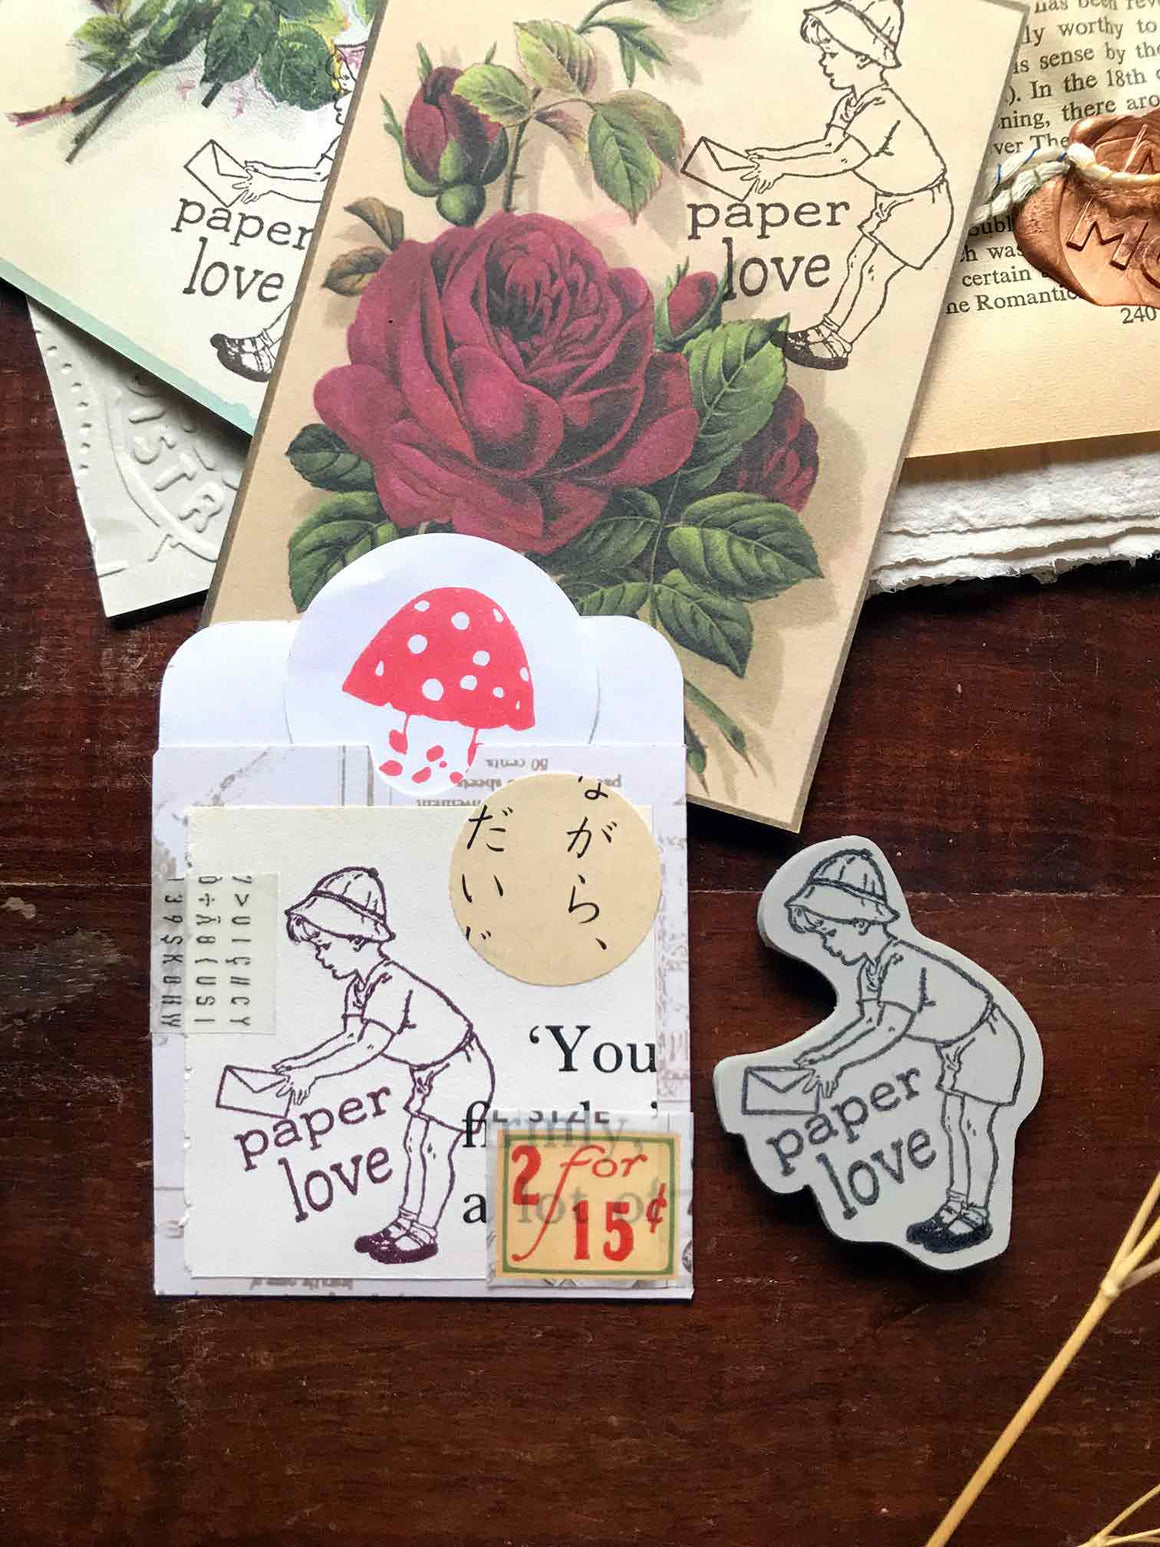 Pre-order 'Paper Love' Rubber Stamp by Mic Moc (紙への愛 )from micmoc.com  Edit alt text